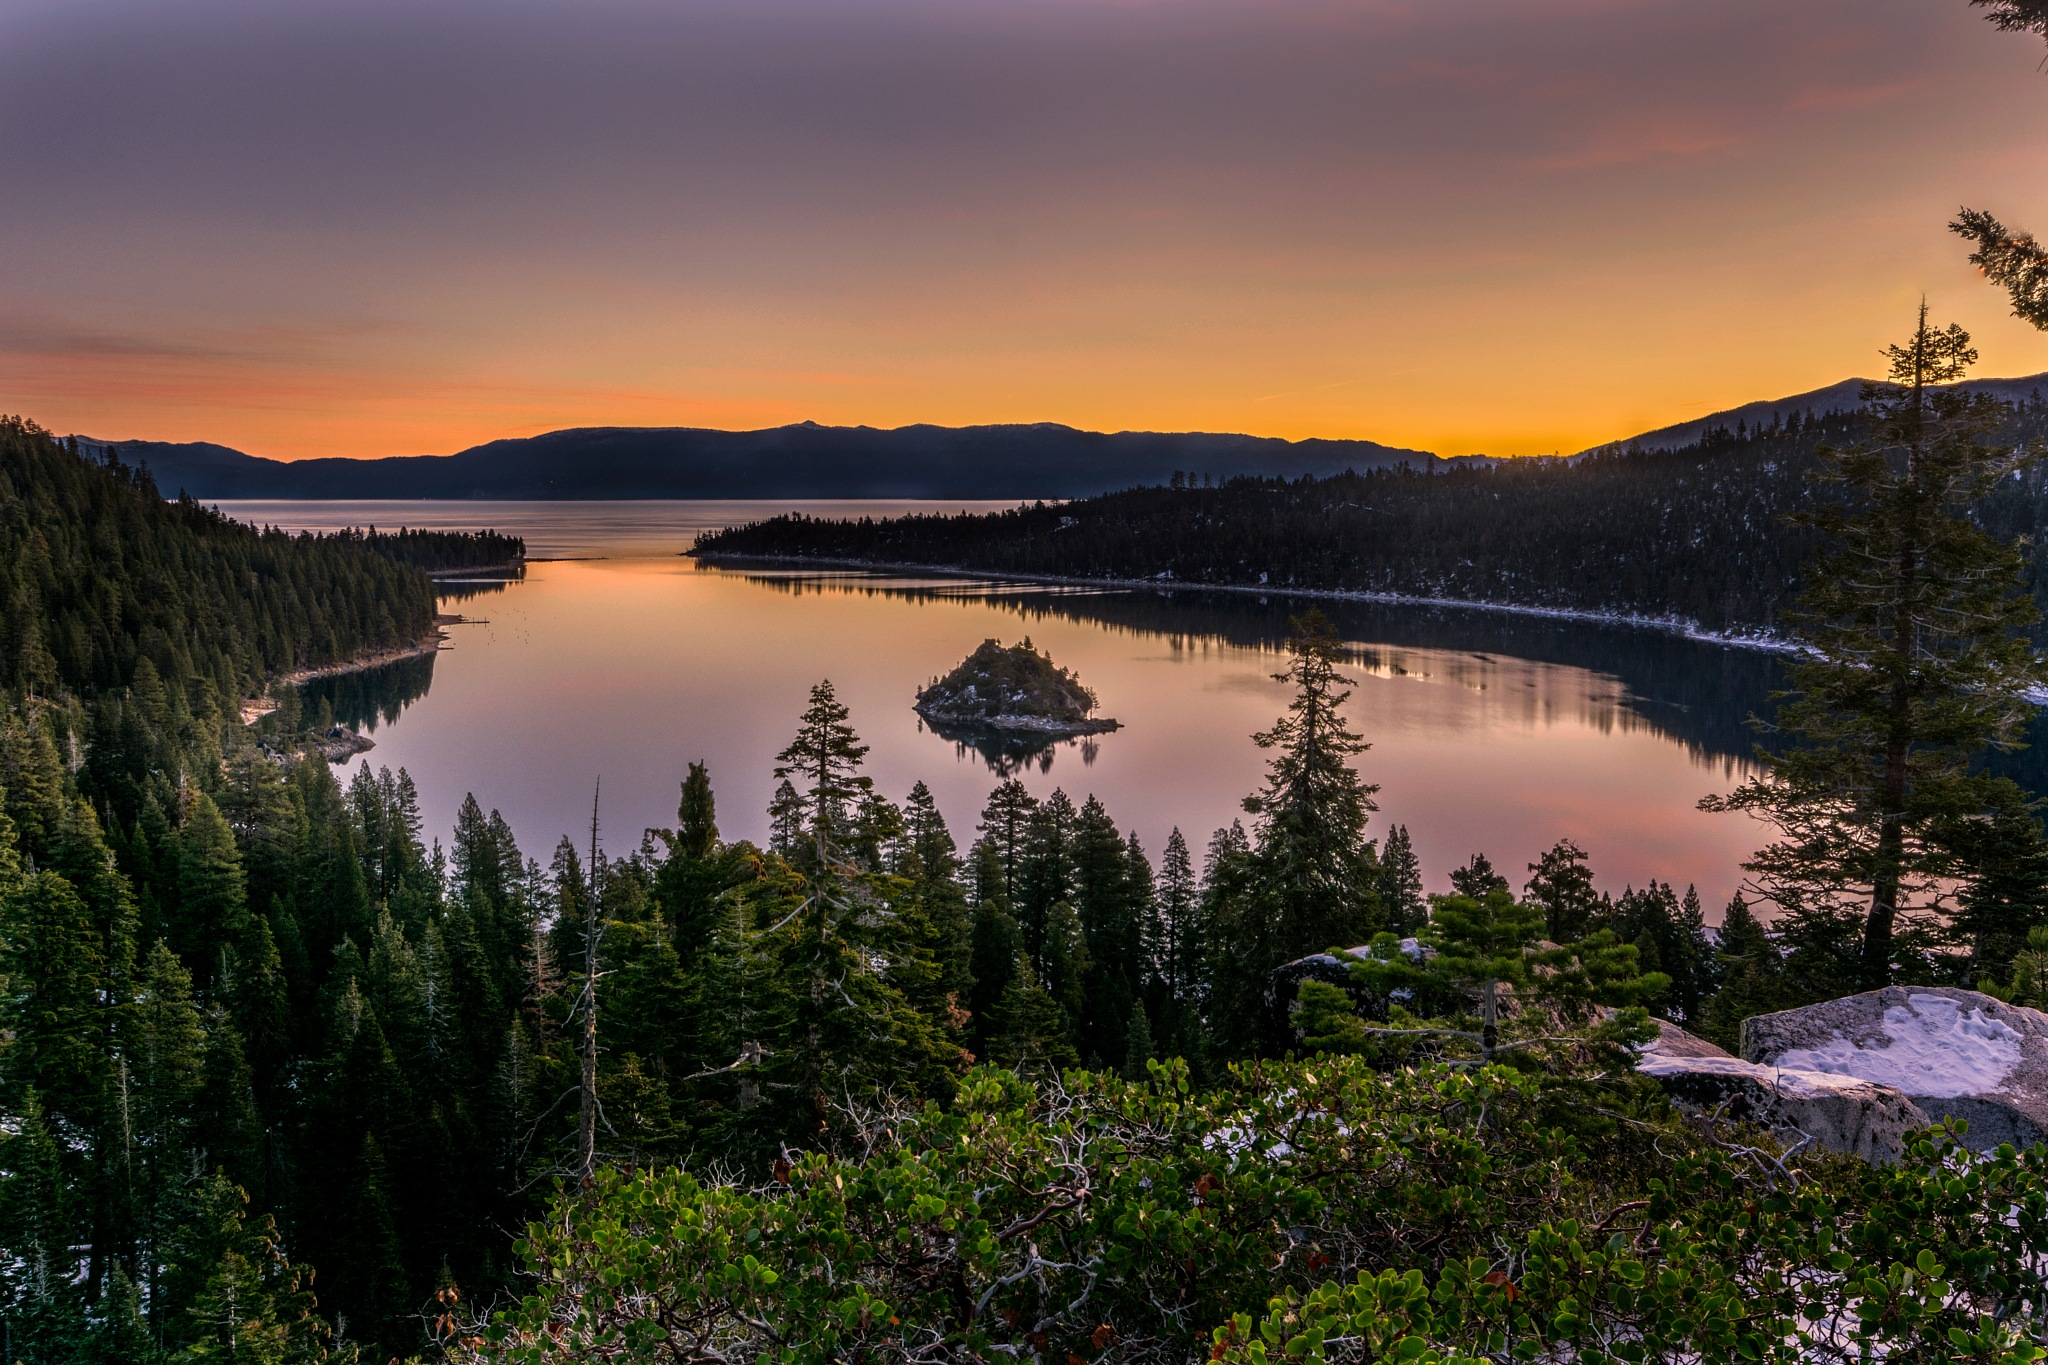 Emerald Bay At Sunrise by Robert Schmalle